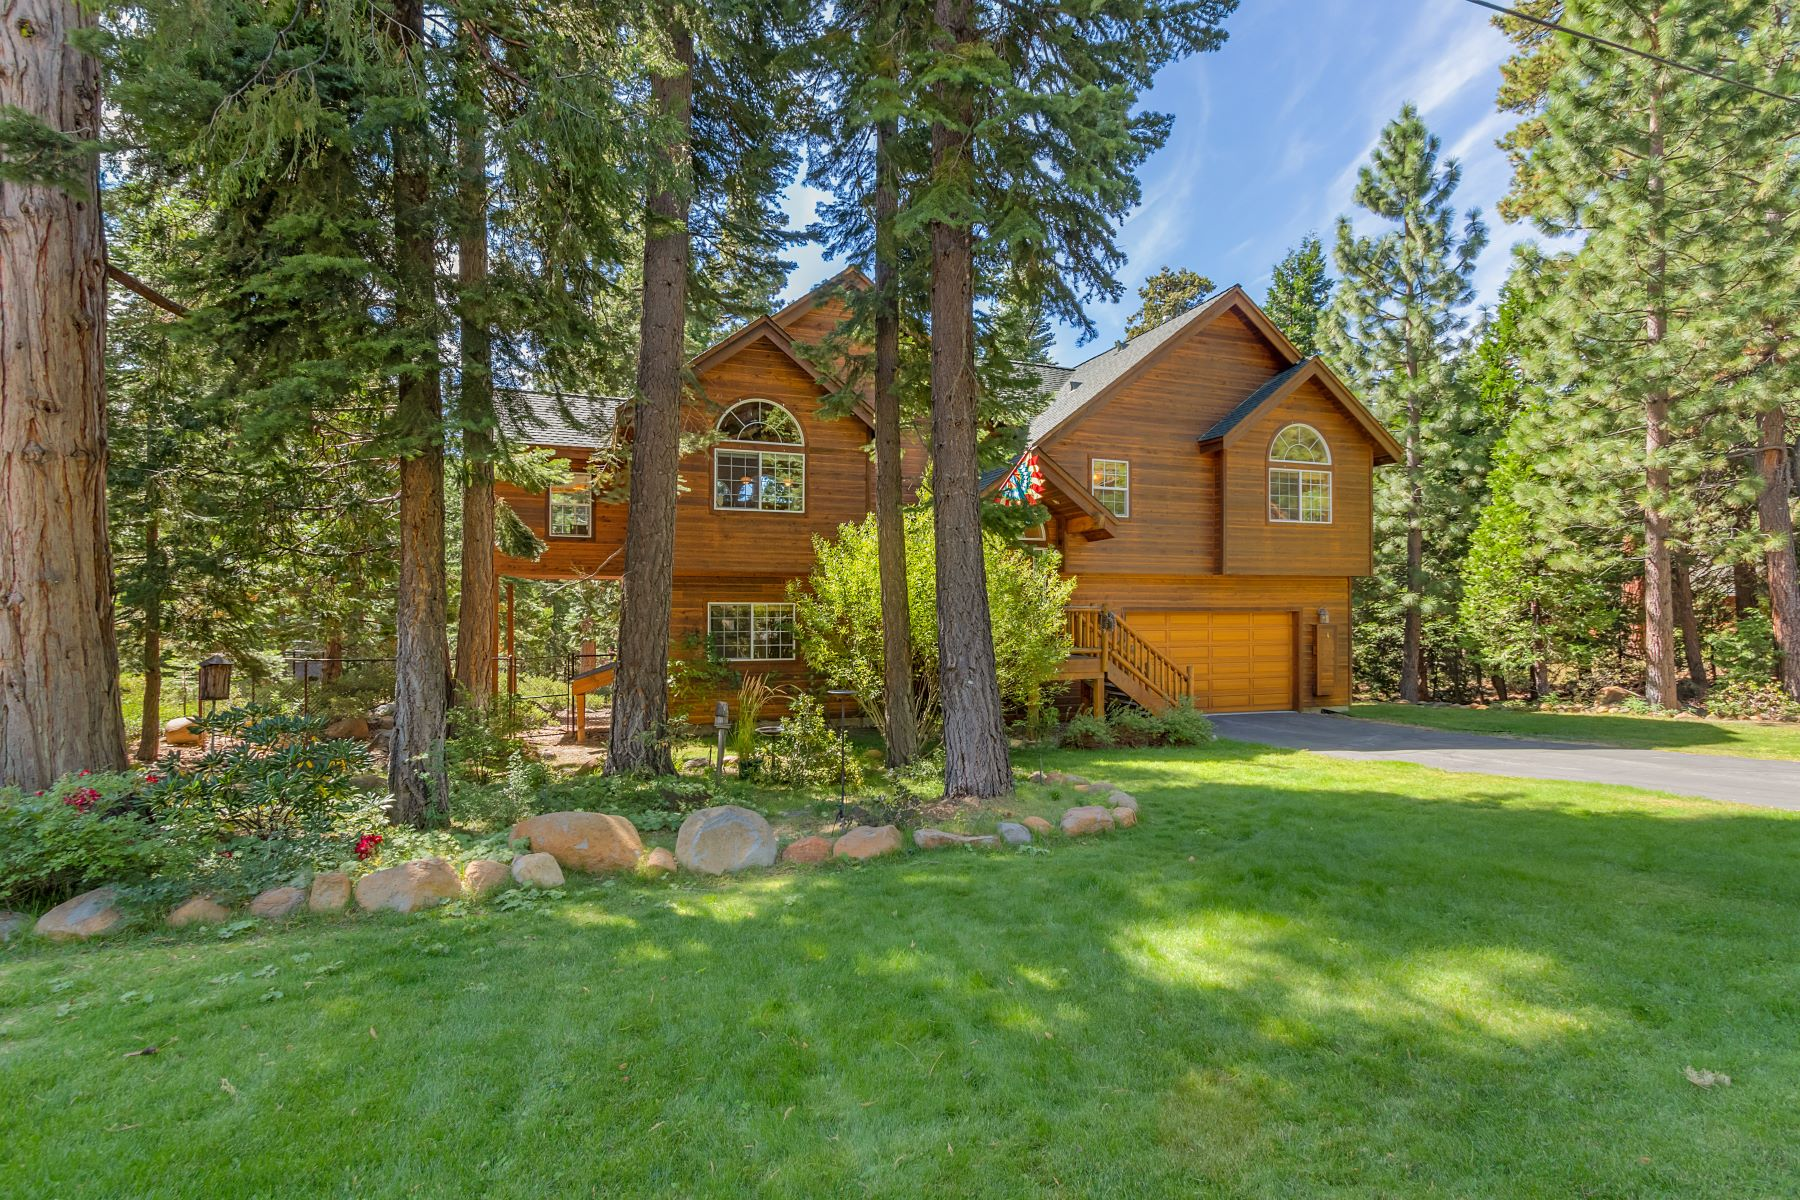 Single Family Home for Active at 6472 Donner Road, Tahoe Vista, CA 96148 6472 Donner Road Tahoe Vista, California 96148 United States